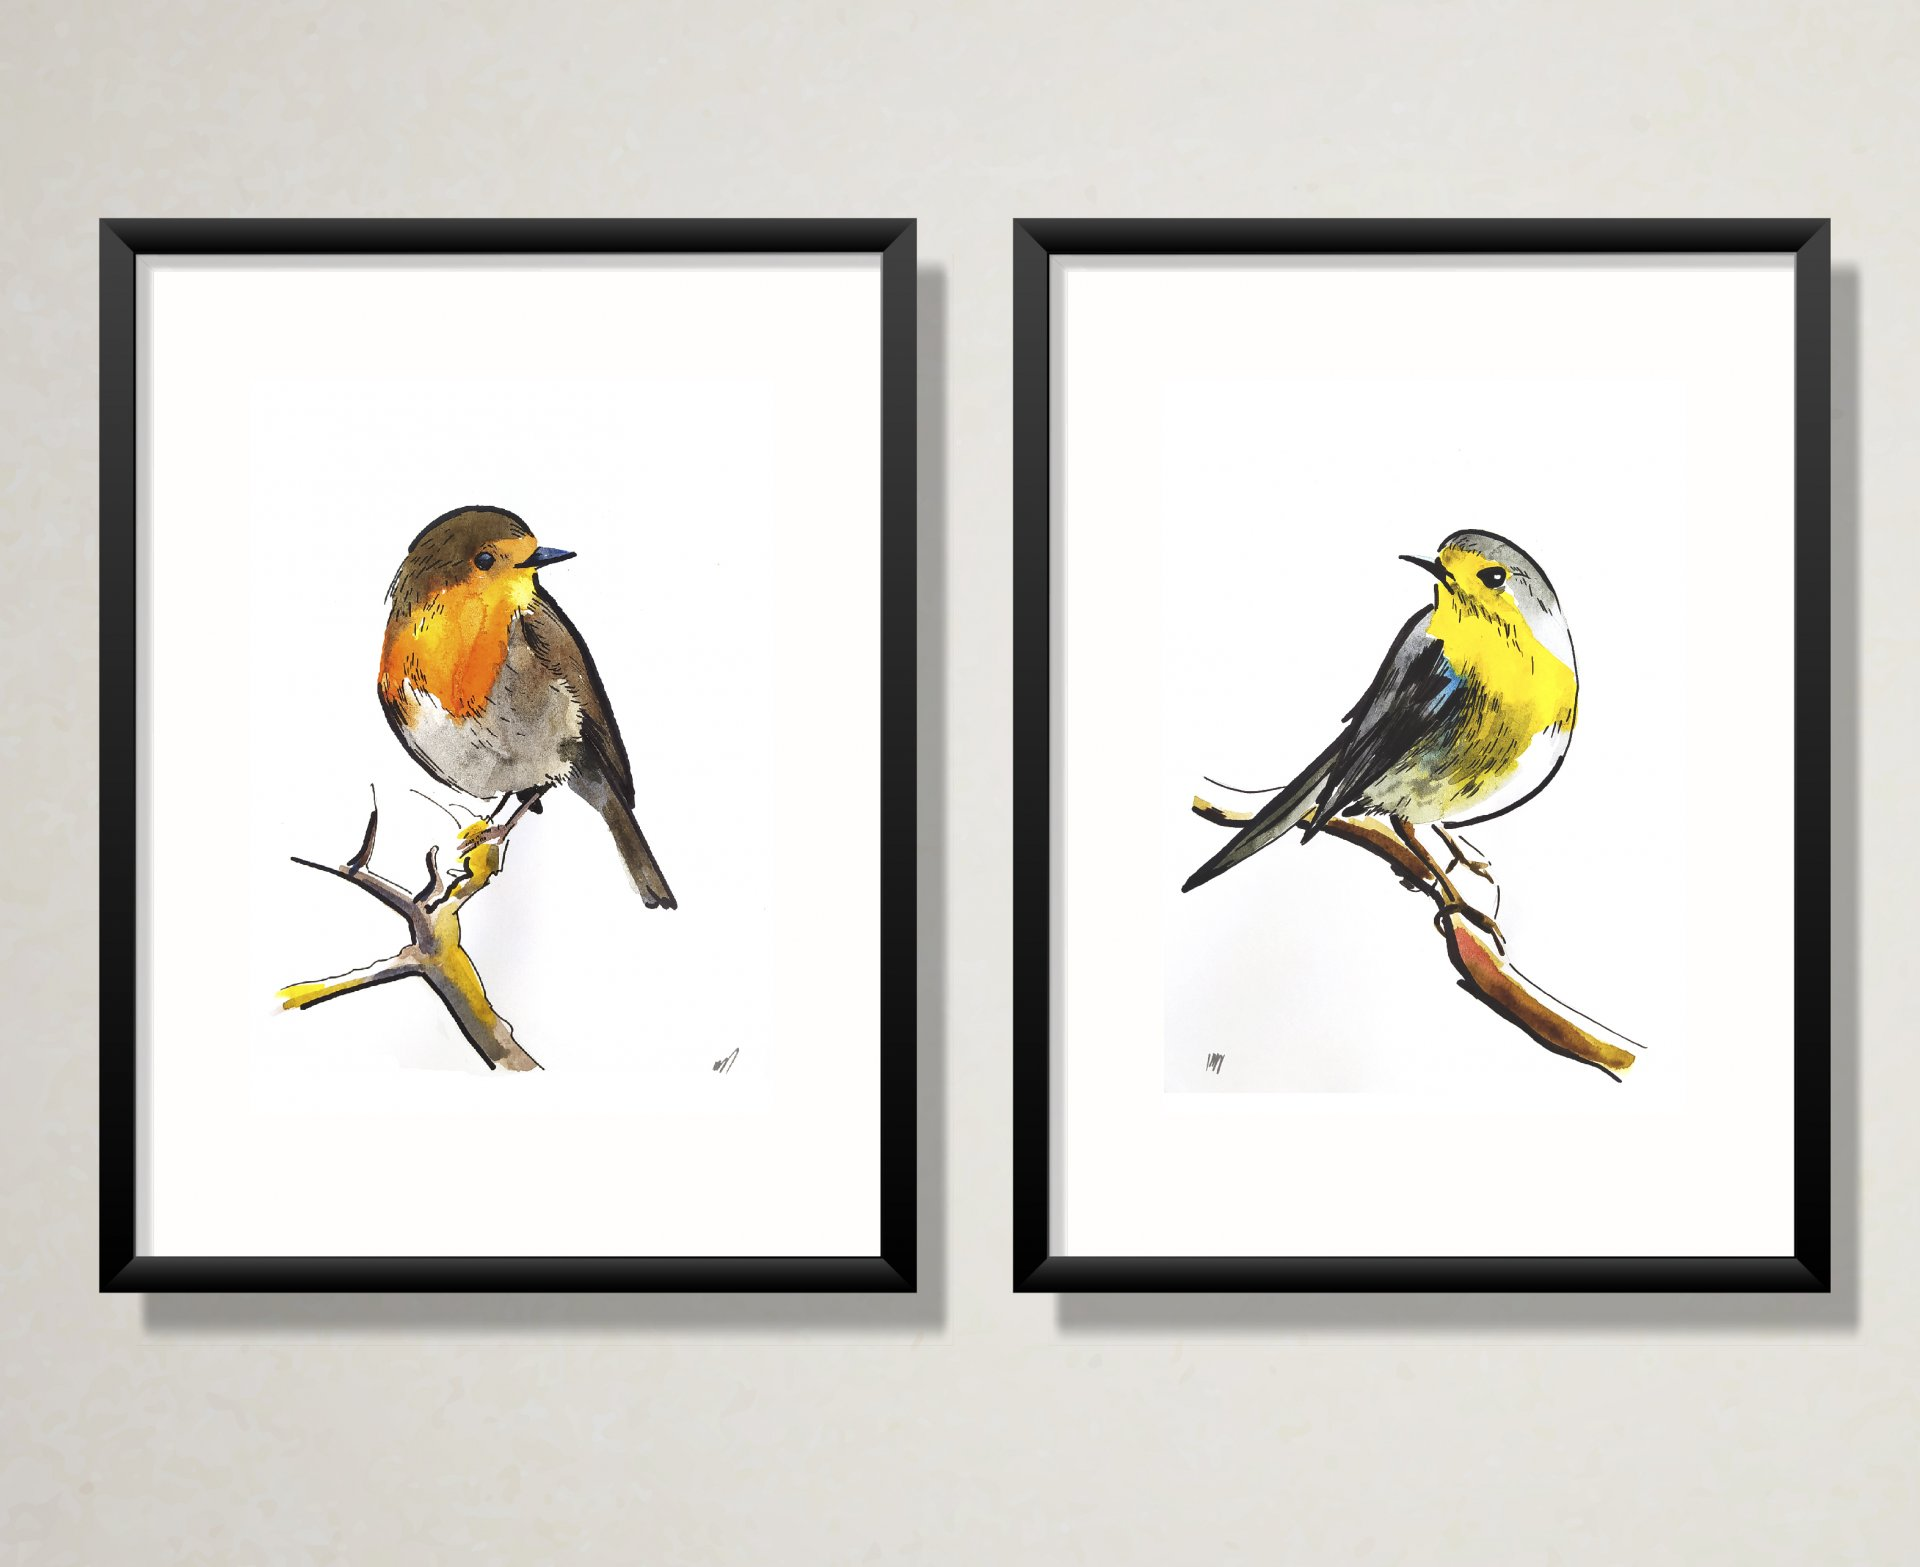 A series of two works. Birds.